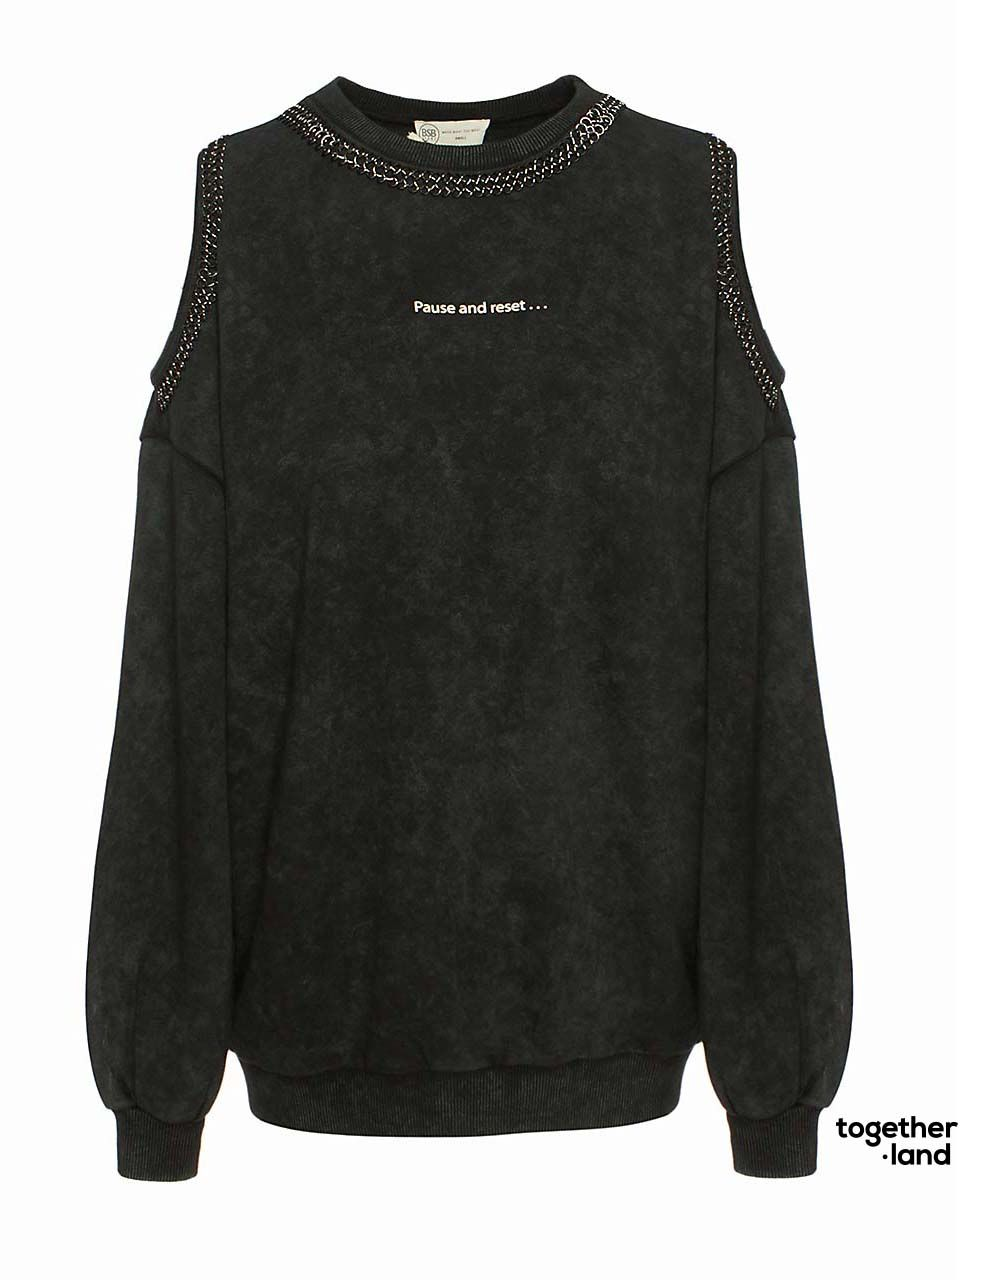 SWEATER WITH CHAIN - TOGETHERLAND